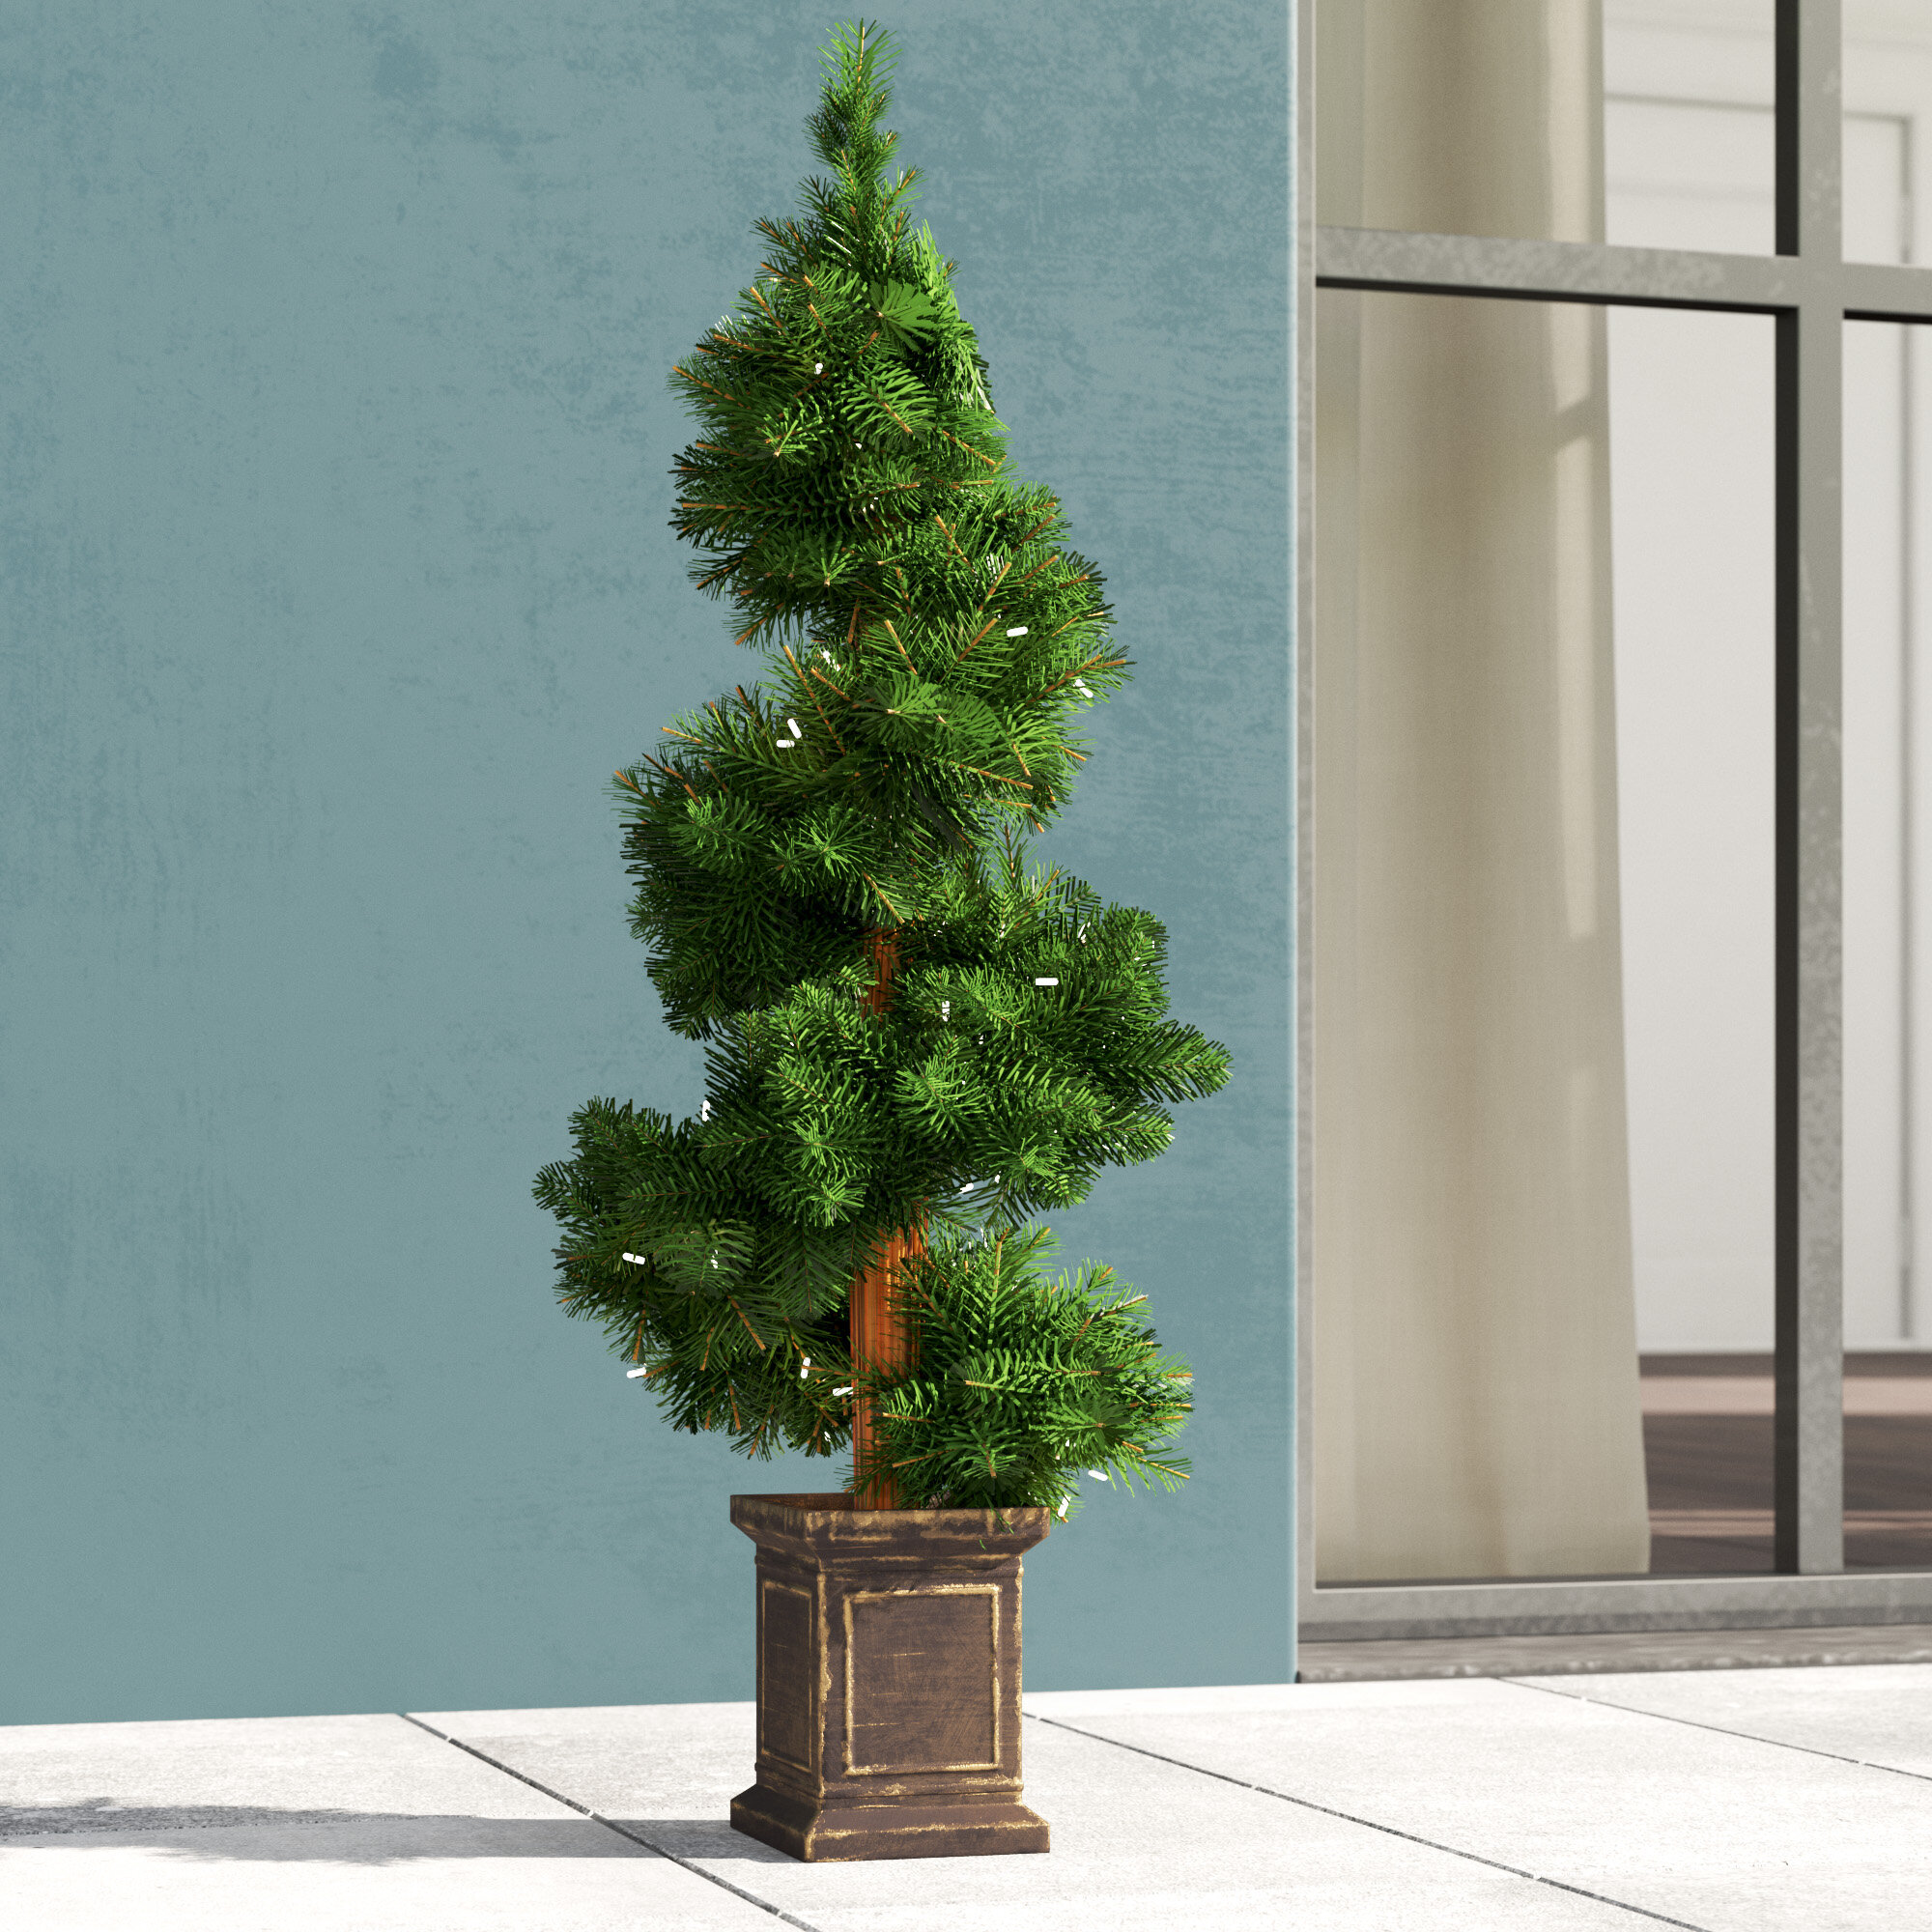 Greyleigh Potted Spiral Tree 34 Artificial Boxwood Floor Topiary In Urn Reviews Wayfair